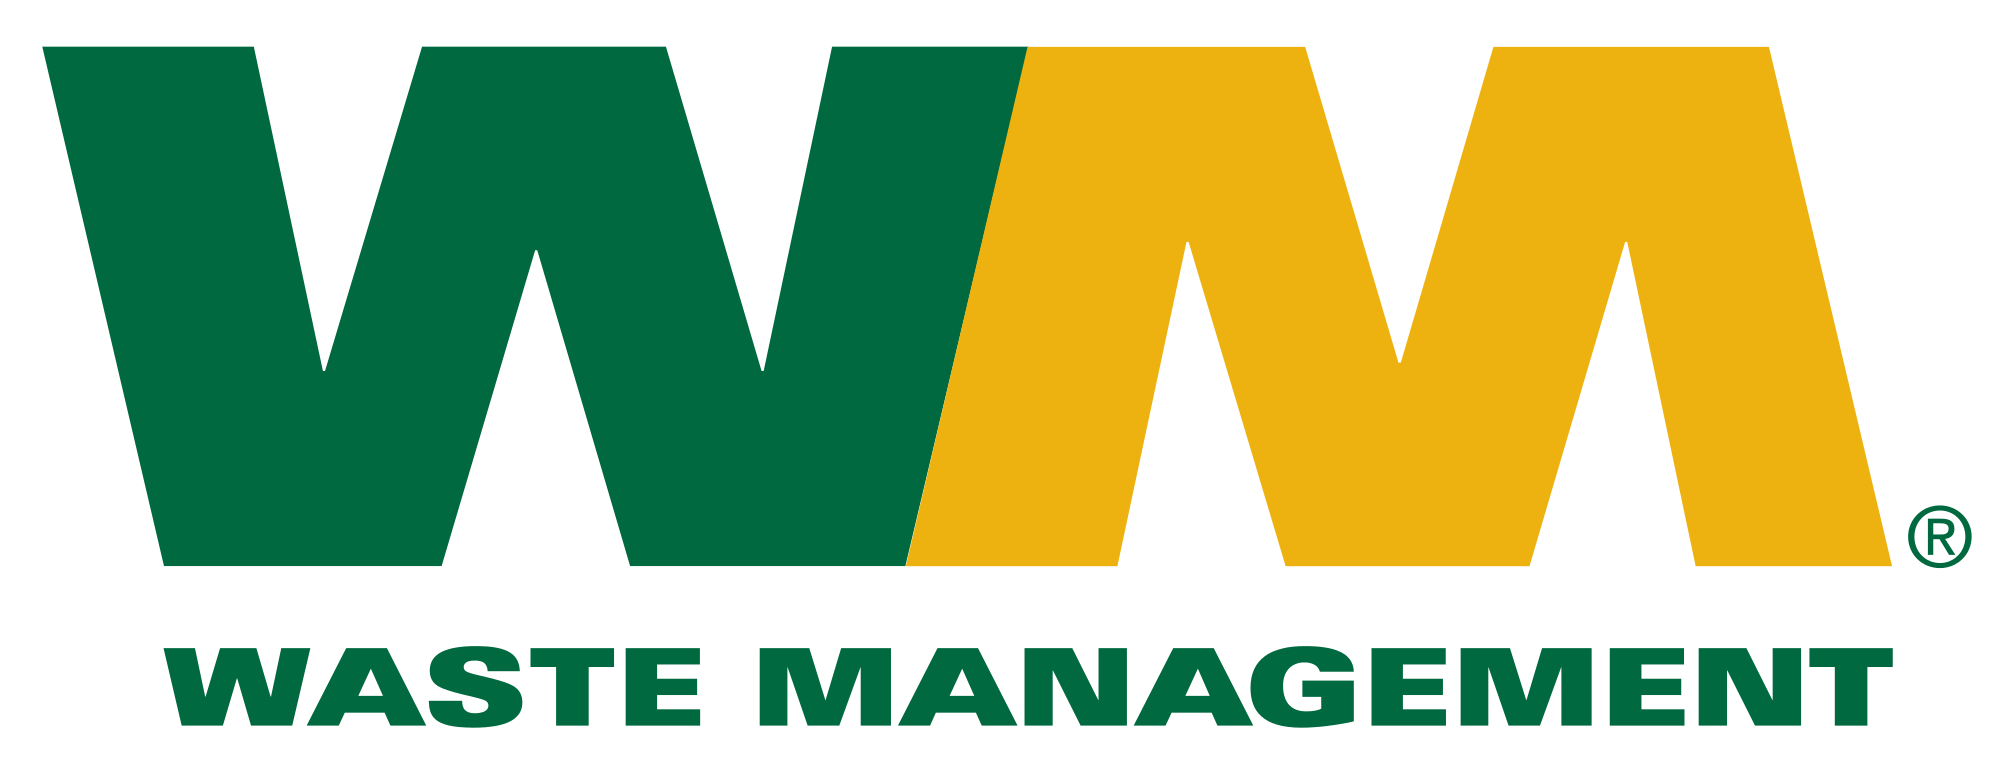 waste-management-recycle-america